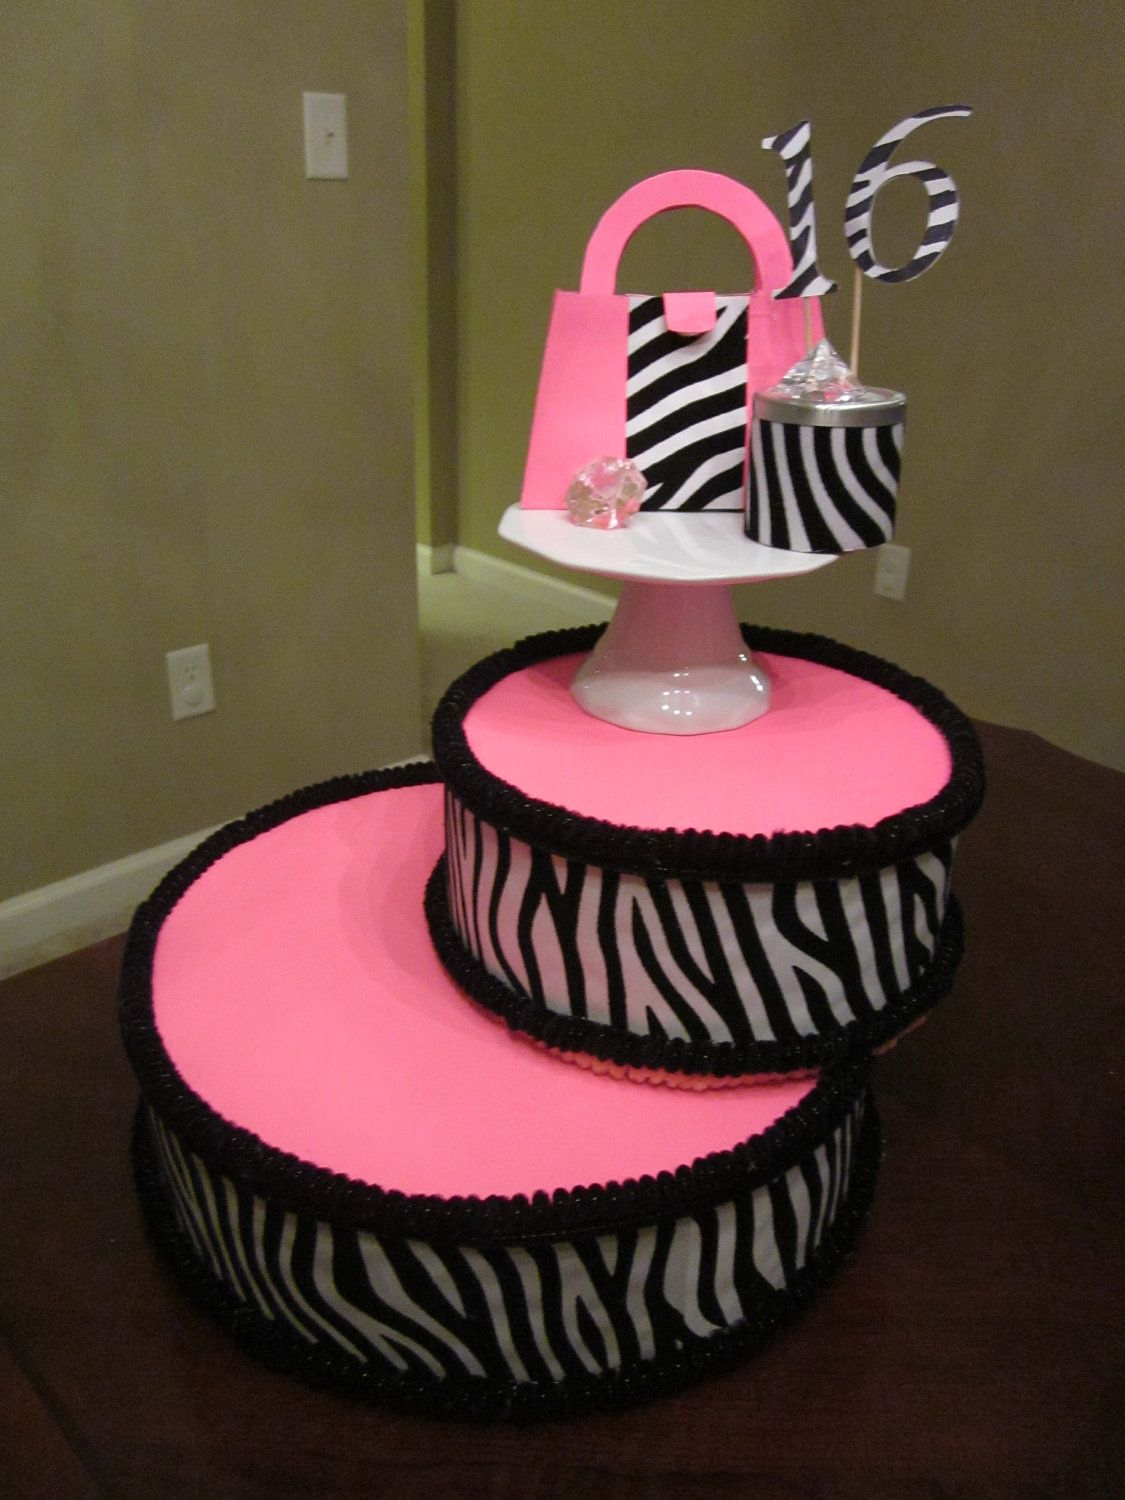 cake pop stand display just for style and presentation not for zebra pink cake stand. Black Bedroom Furniture Sets. Home Design Ideas